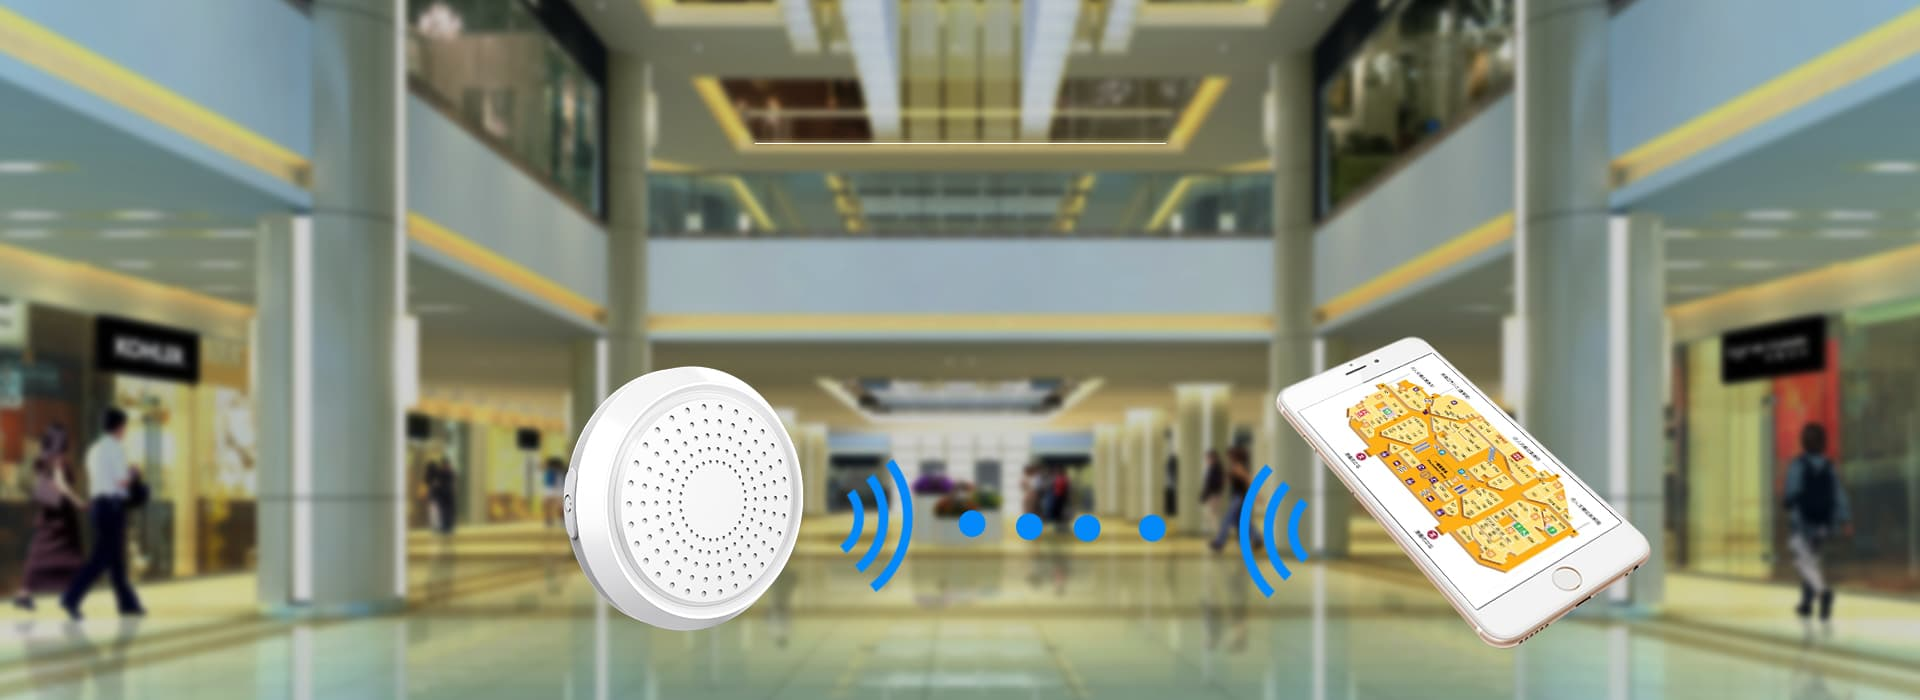 turnkey custom ibeacon beacon solution